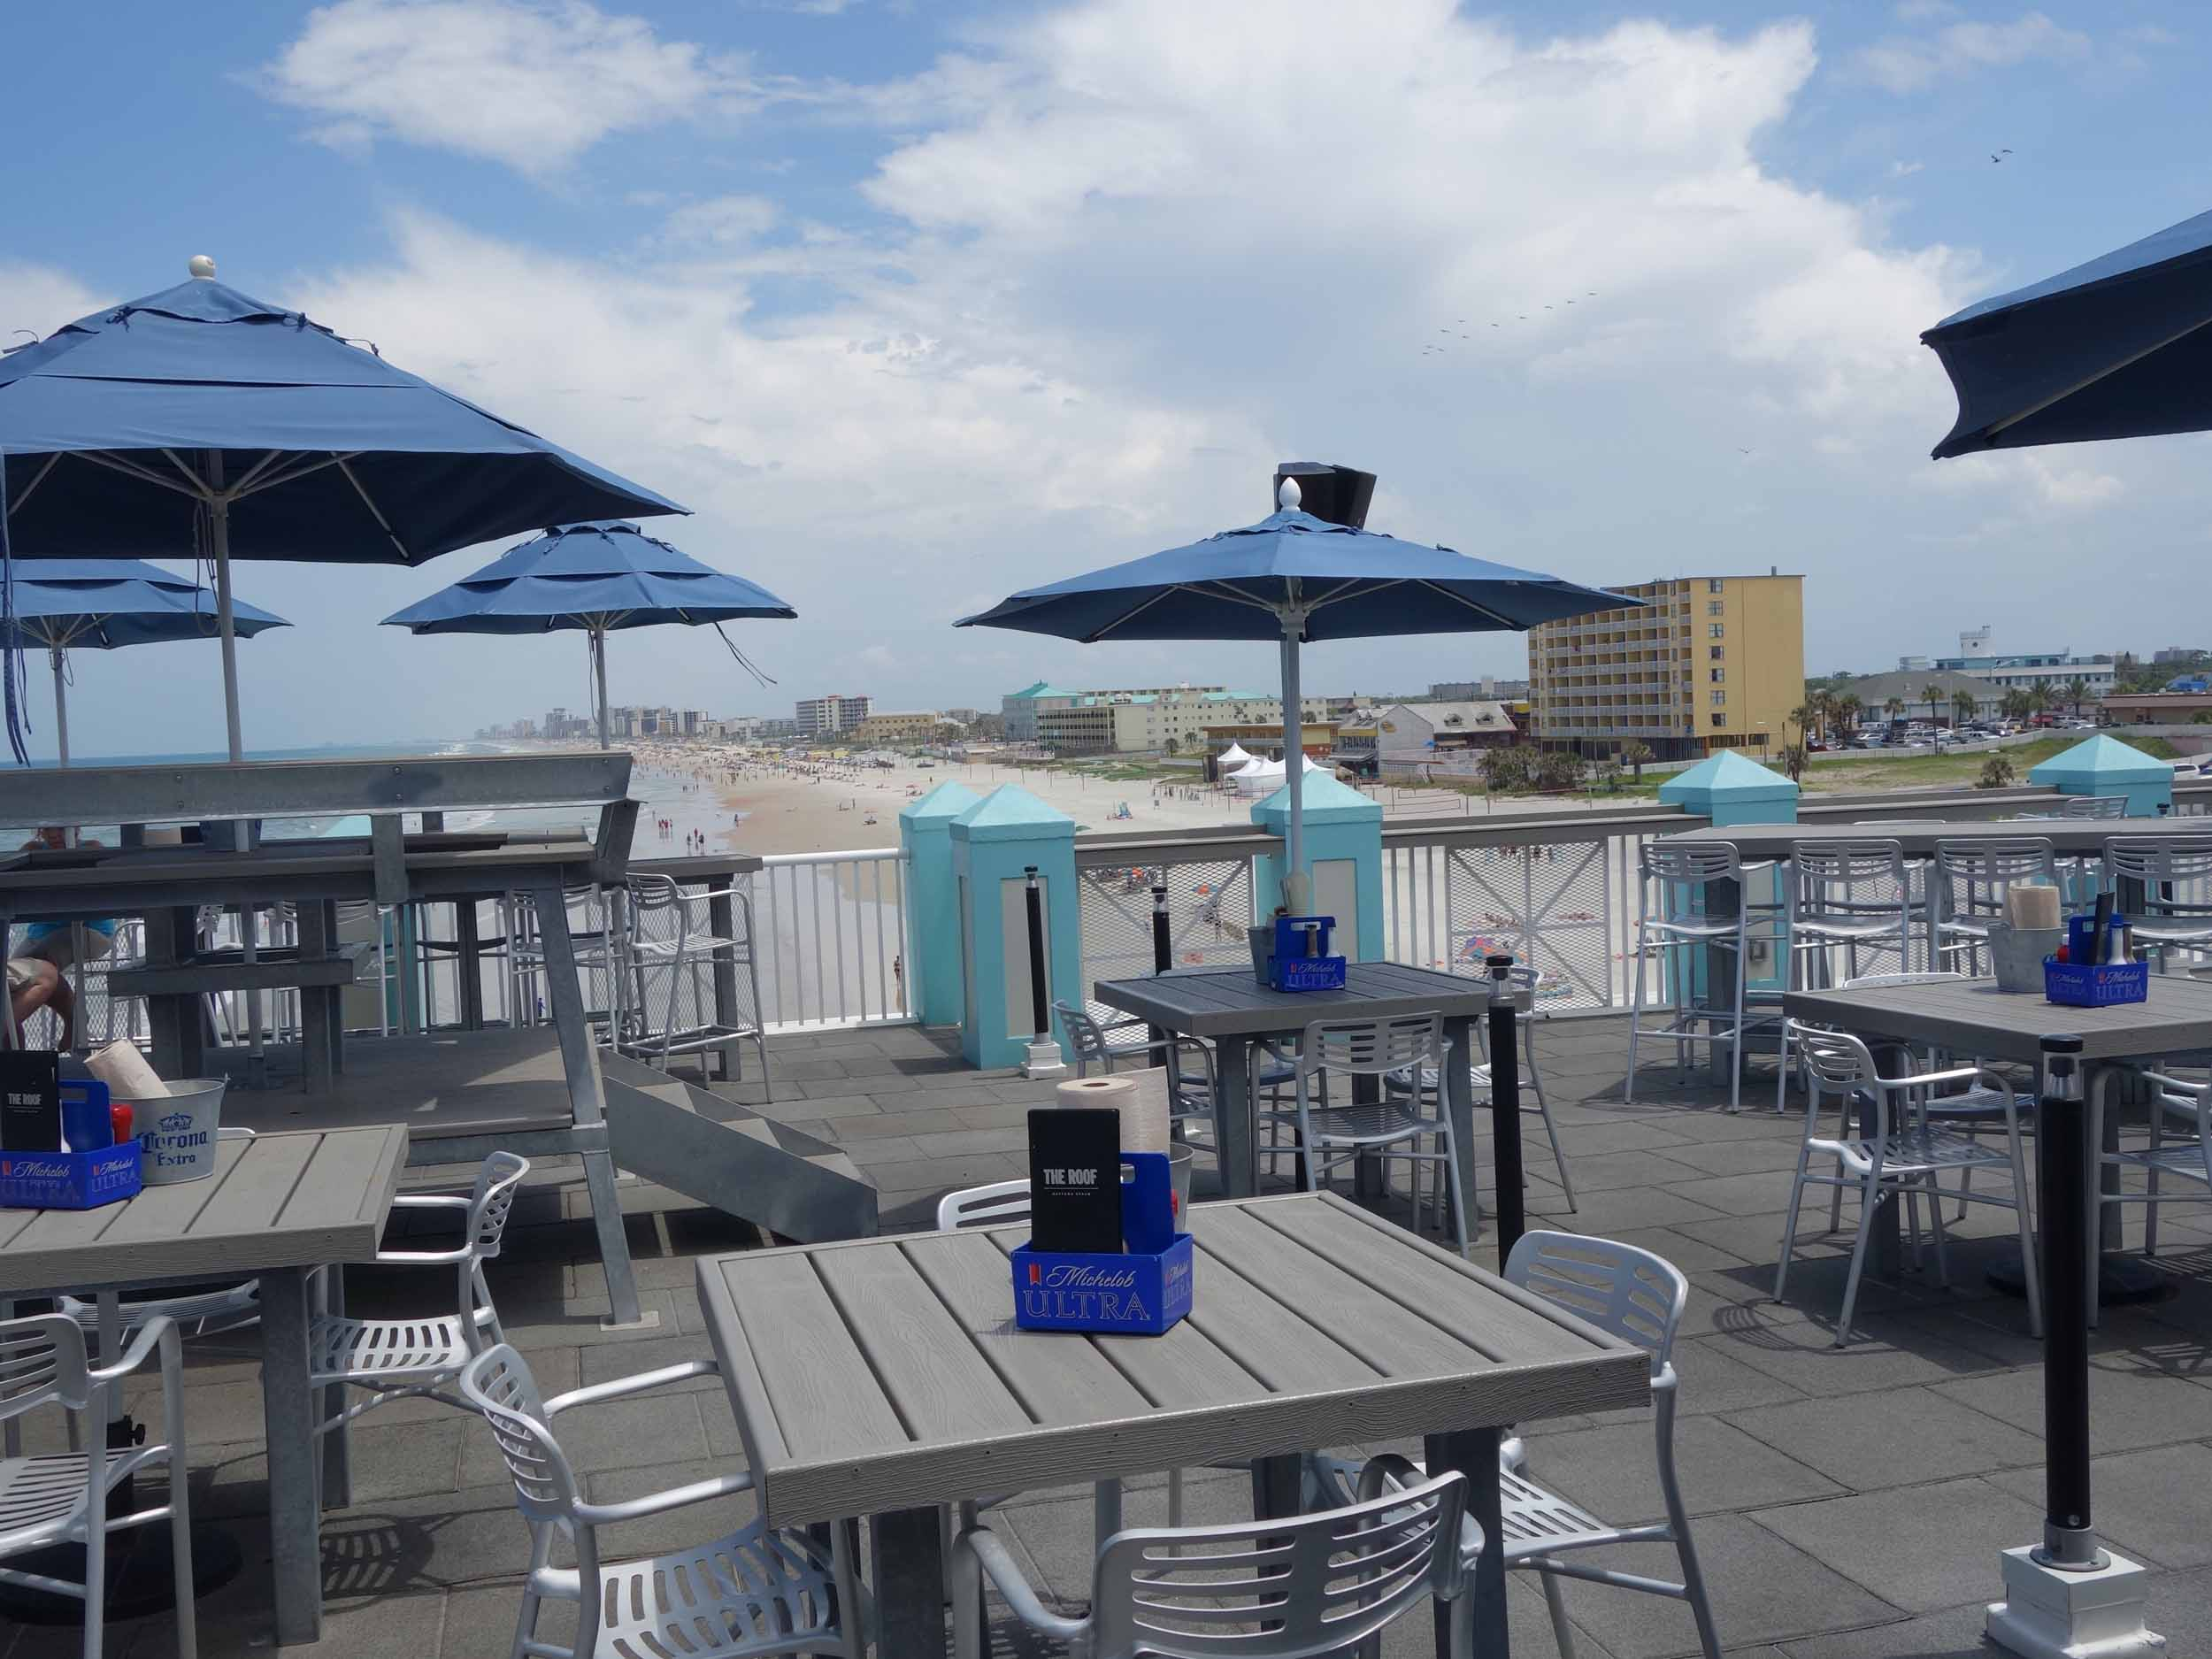 Joe'sThe Roof at Crab Shack Outdoor Seating Area